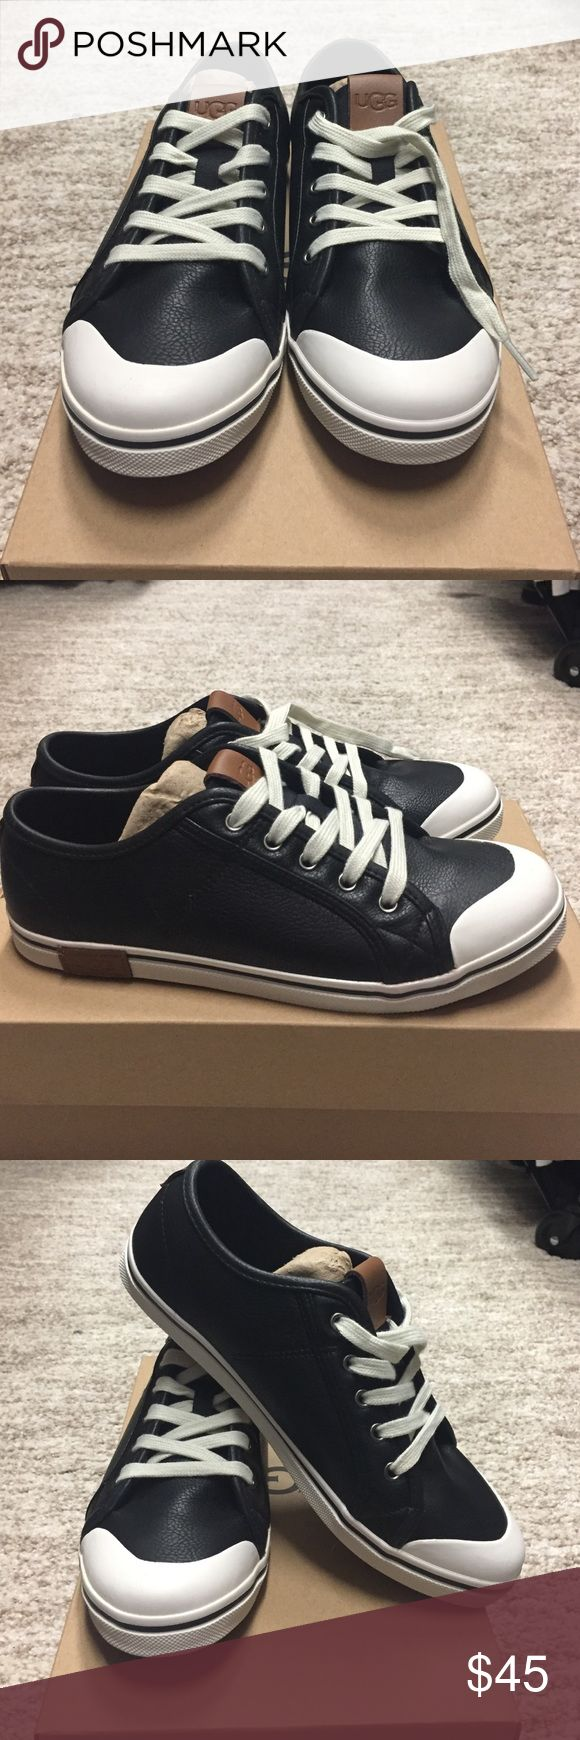 New Leather UGG Sneakers Kids black leather sneakers, new in box. This is a set price. UGG Shoes Sneakers